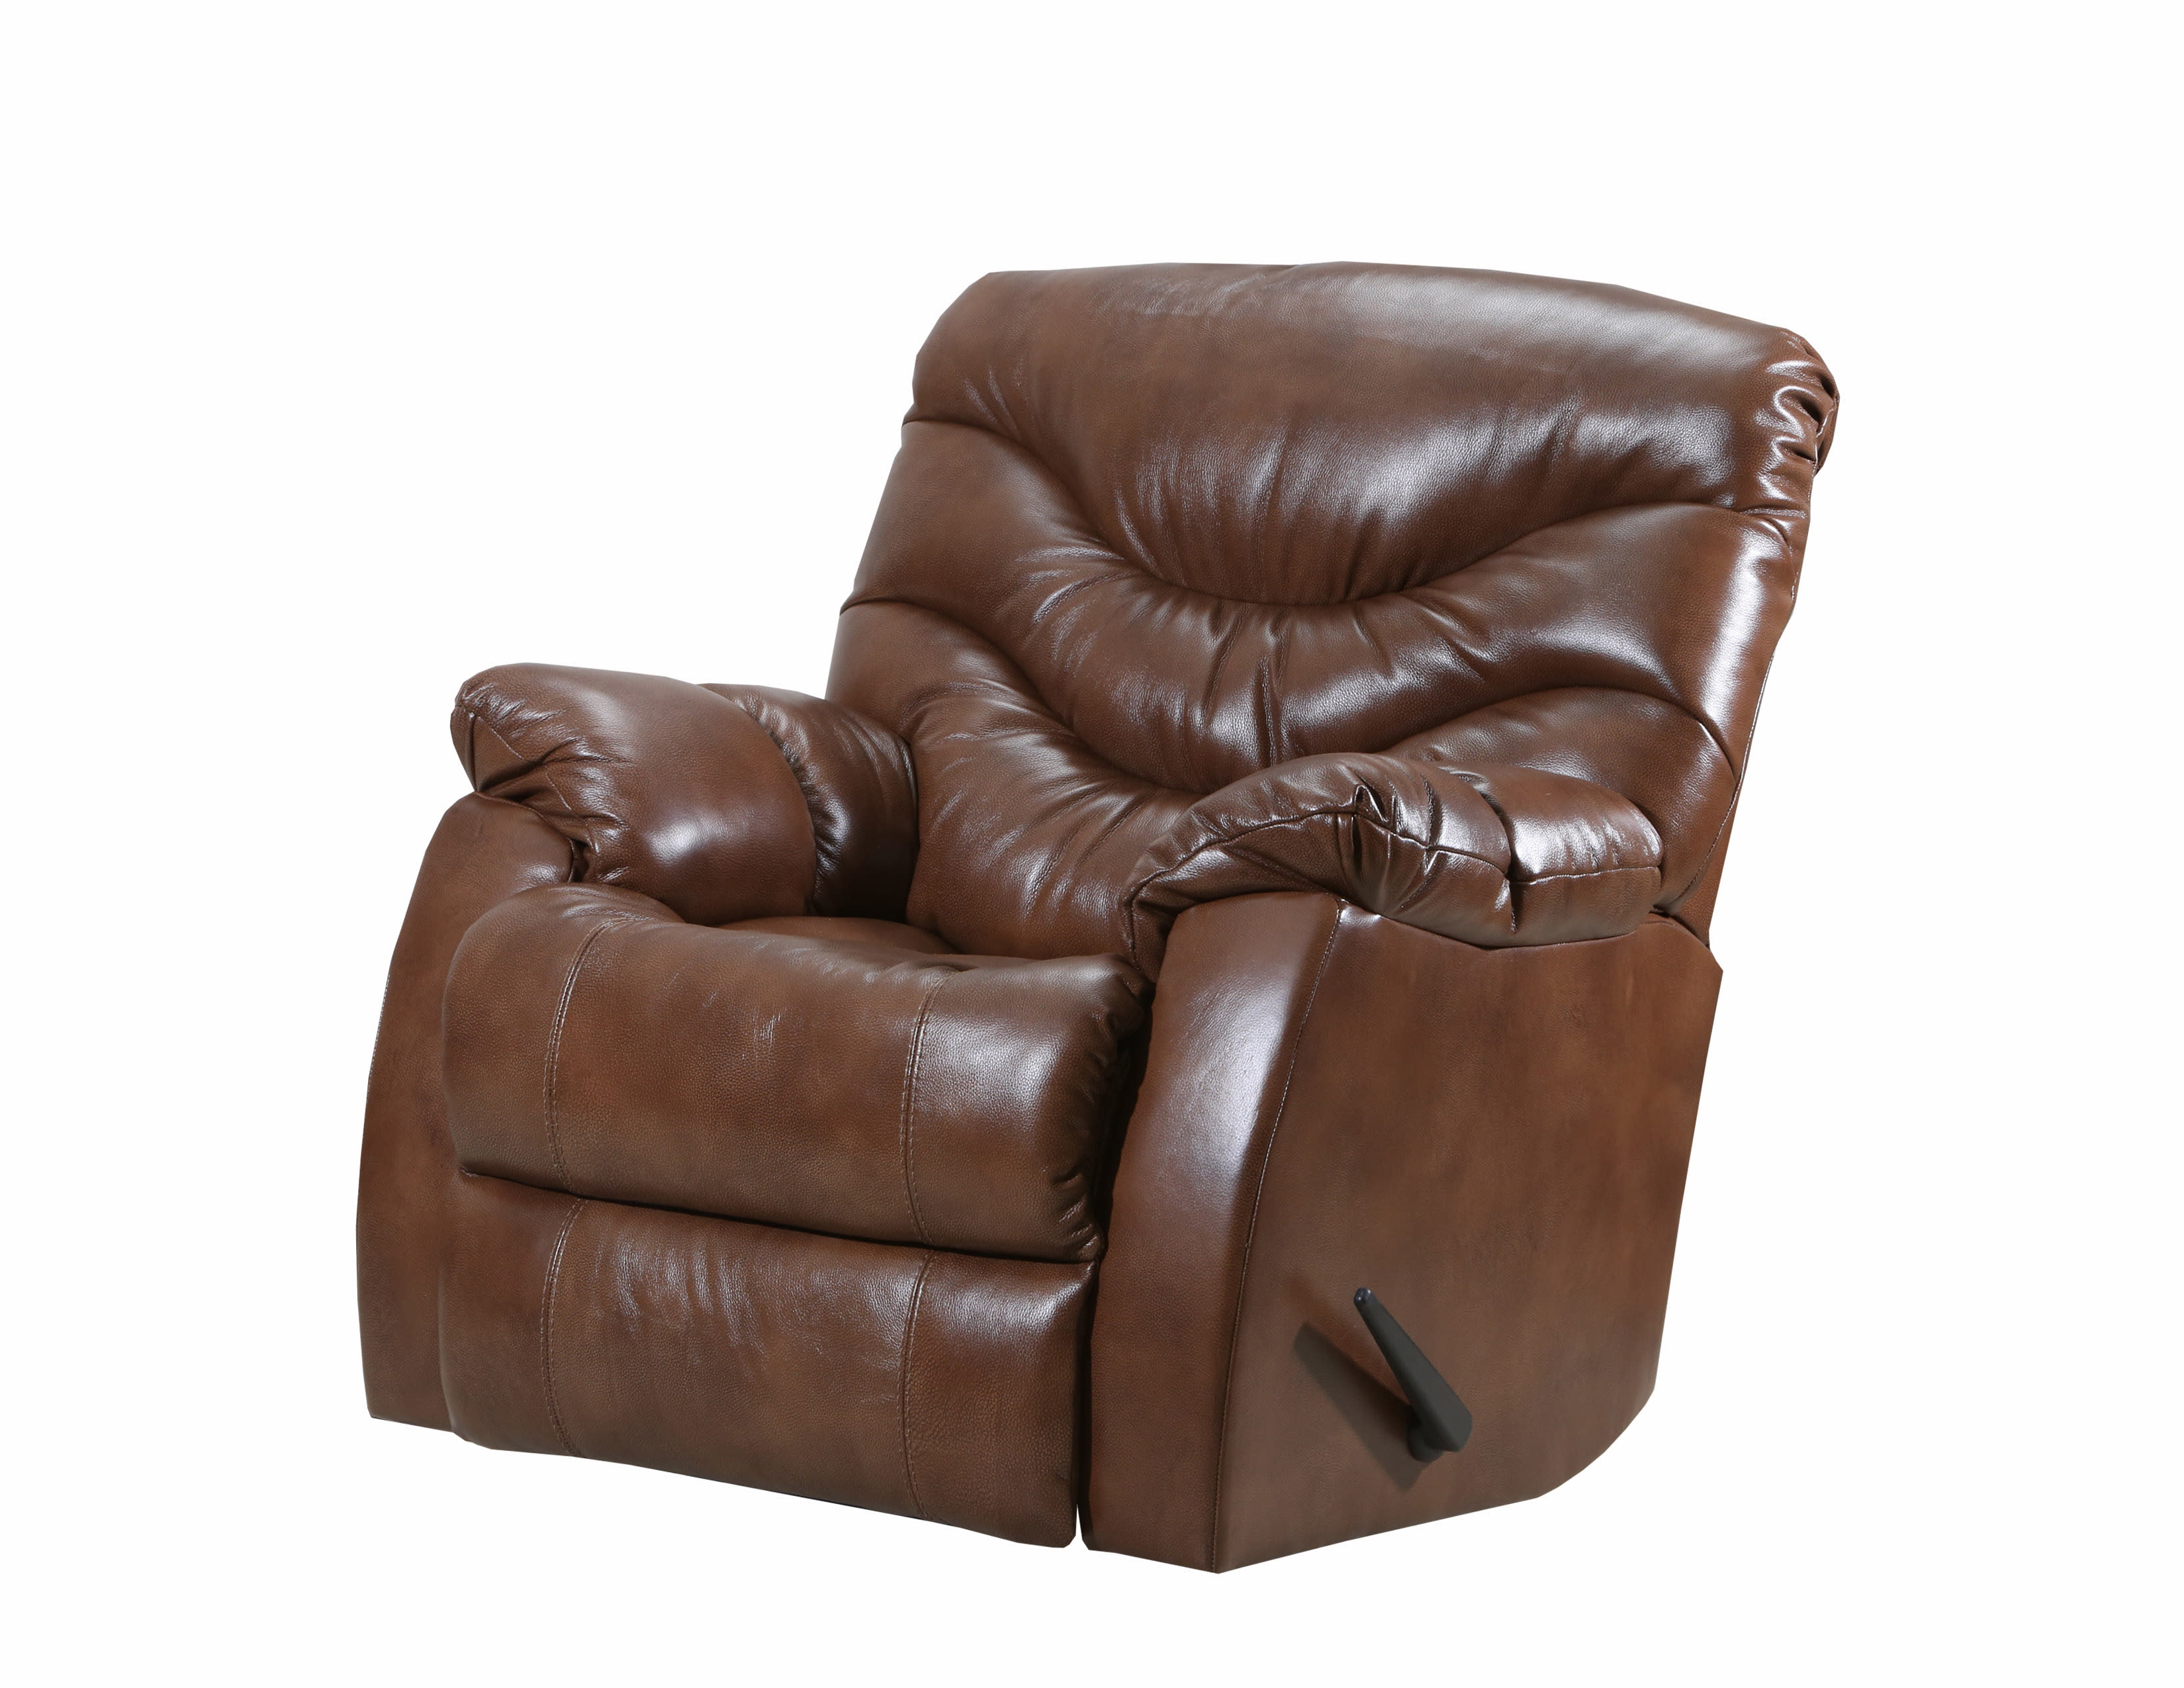 Lane Furniture Yellowstone Tobacco Swivel Rocker Recliner & Reviews For Widely Used Swivel Tobacco Leather Chairs (View 11 of 20)